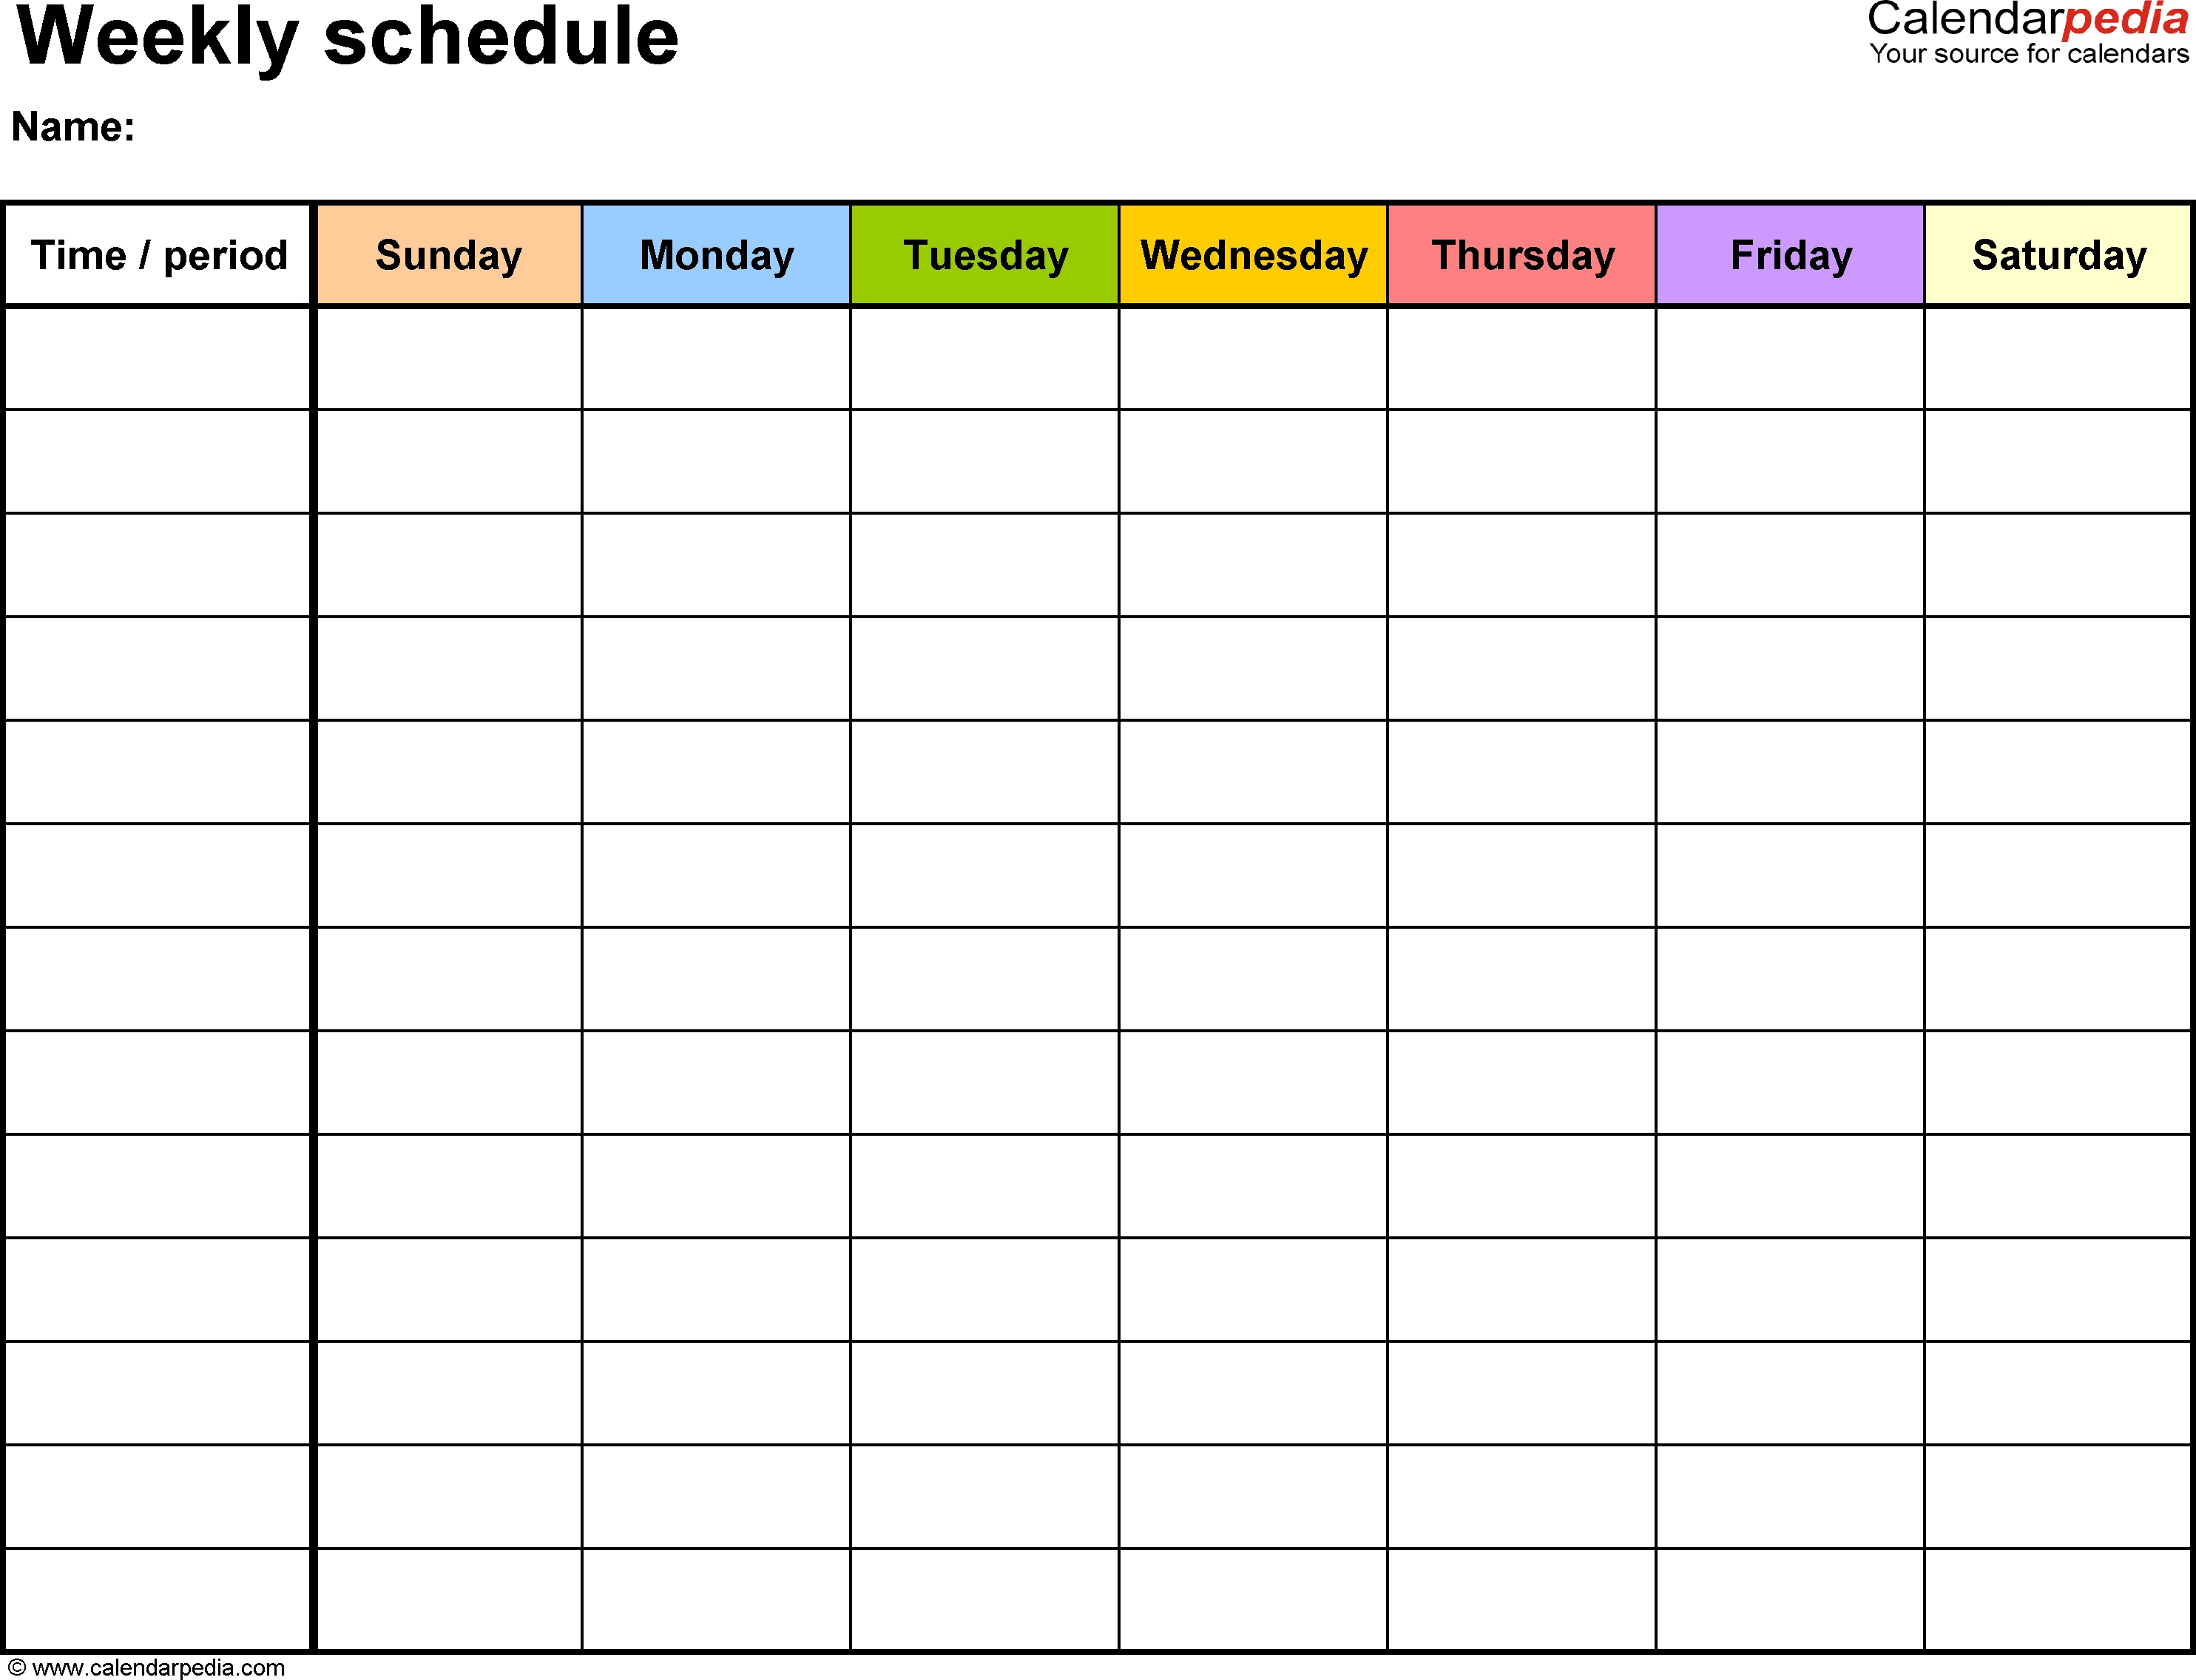 Free Weekly Schedule Templates For Word - 18 Templates-Monday To Friday 2 Week Calendar Template